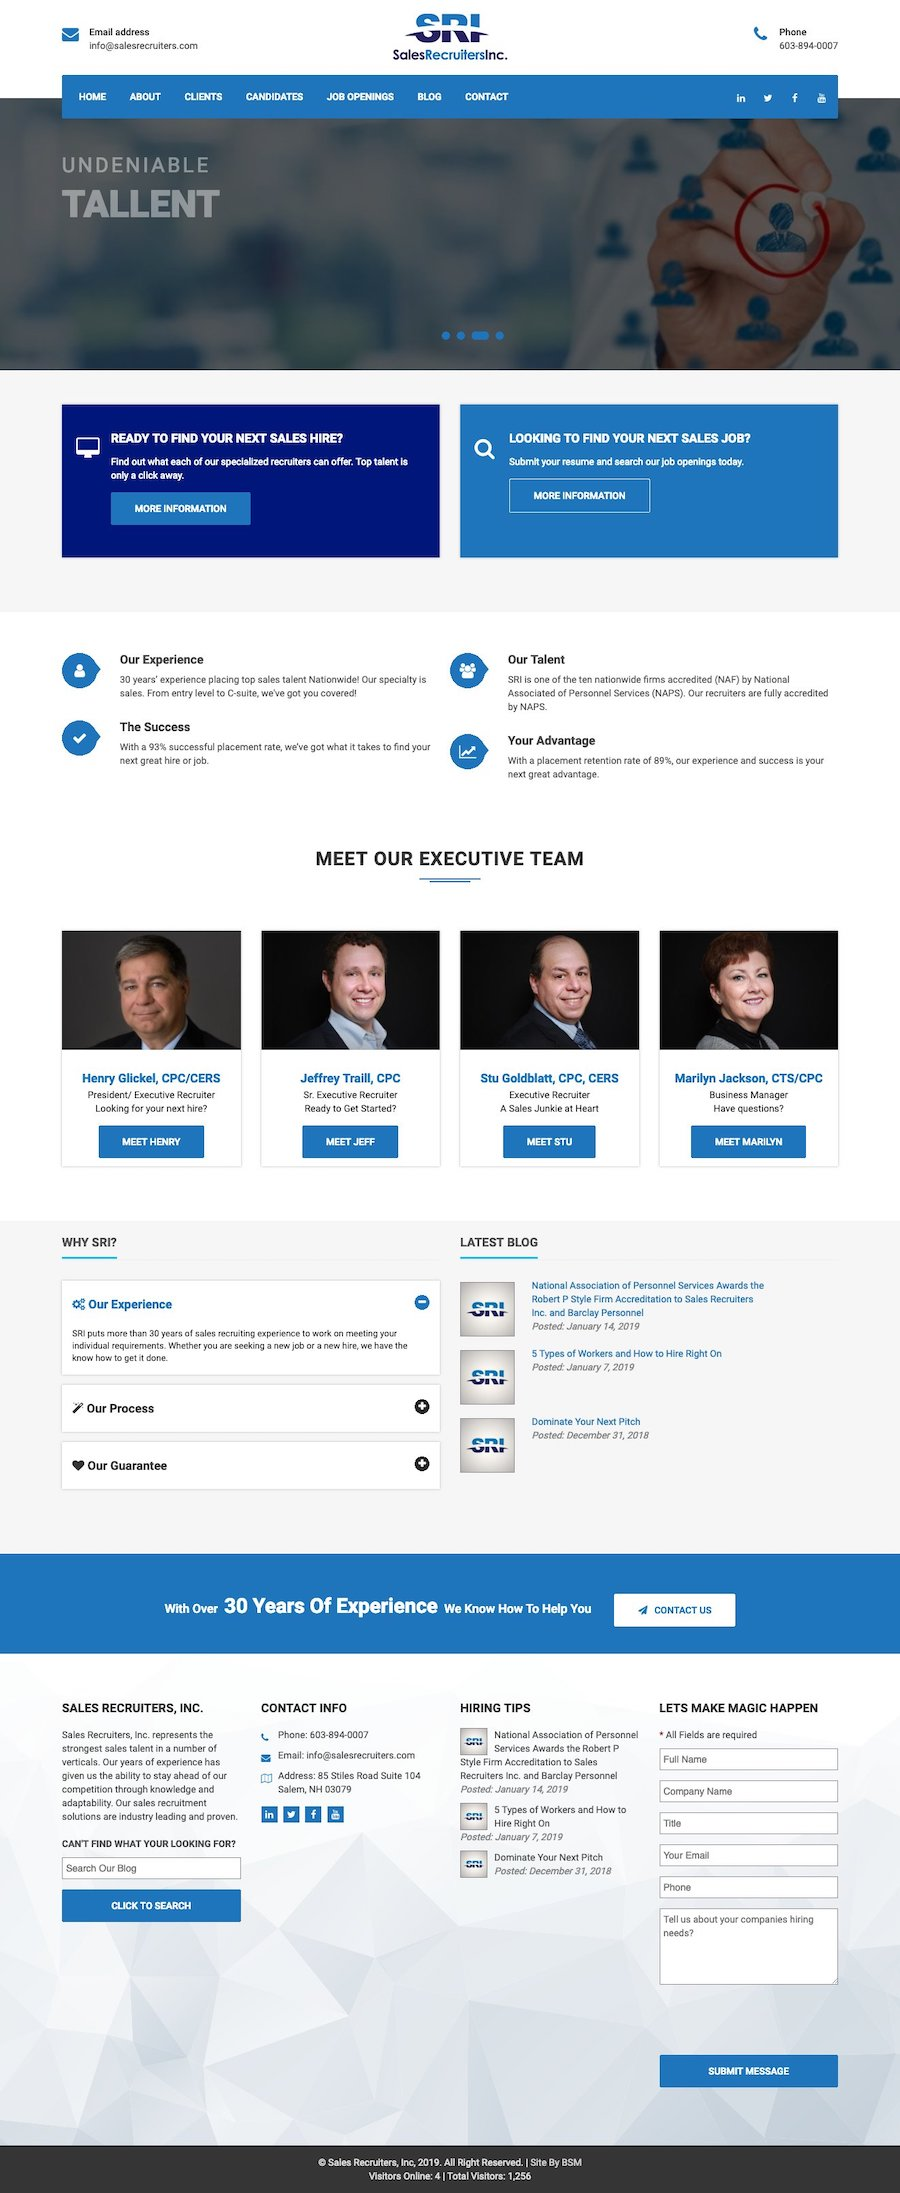 Sales Recruiters, Inc.